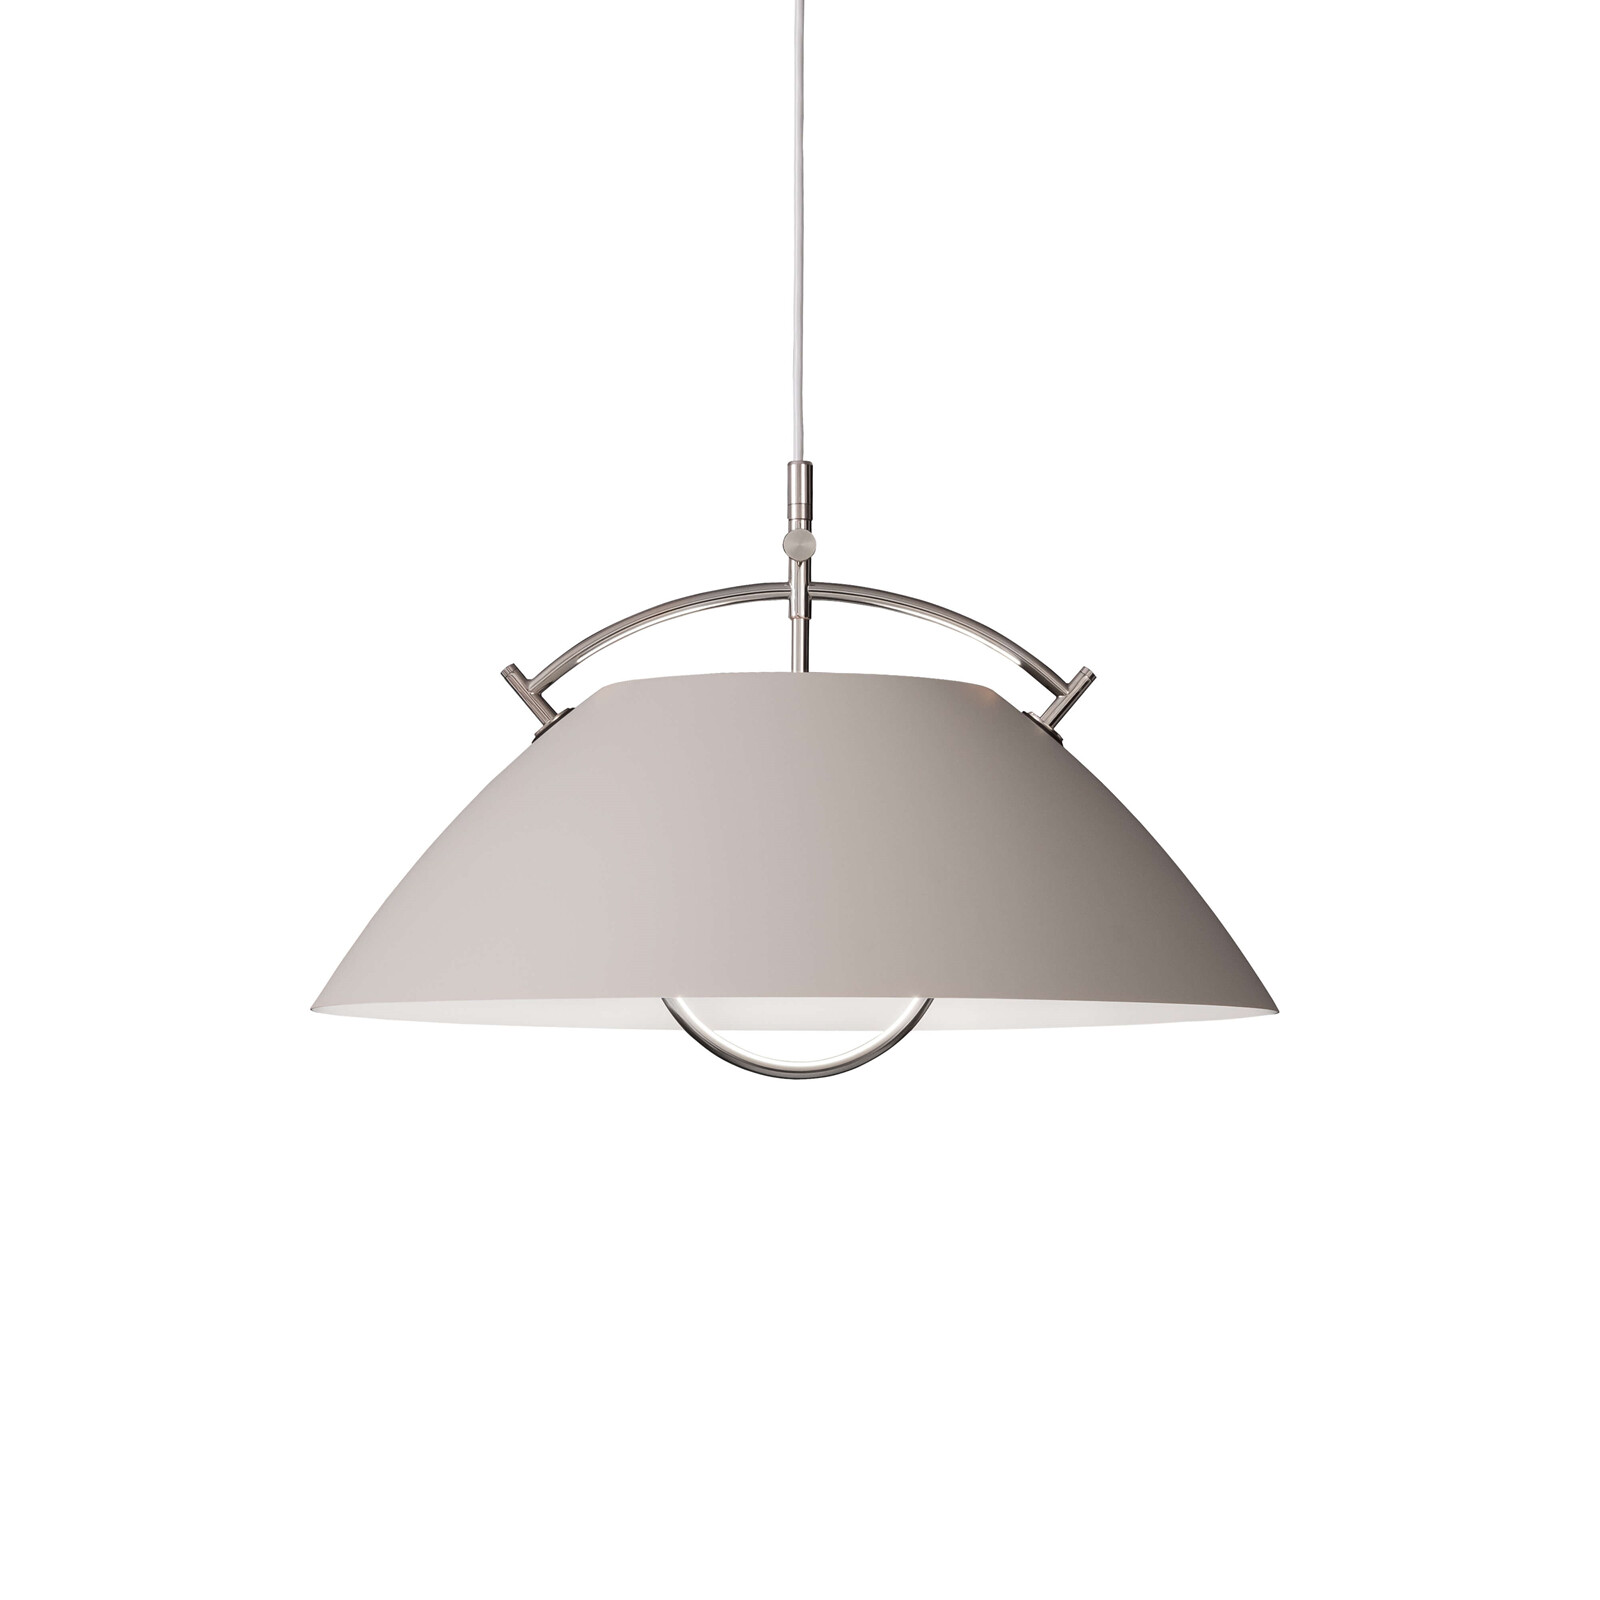 The Pendant Light Grey Wegner Hejse Pendel - Pandul